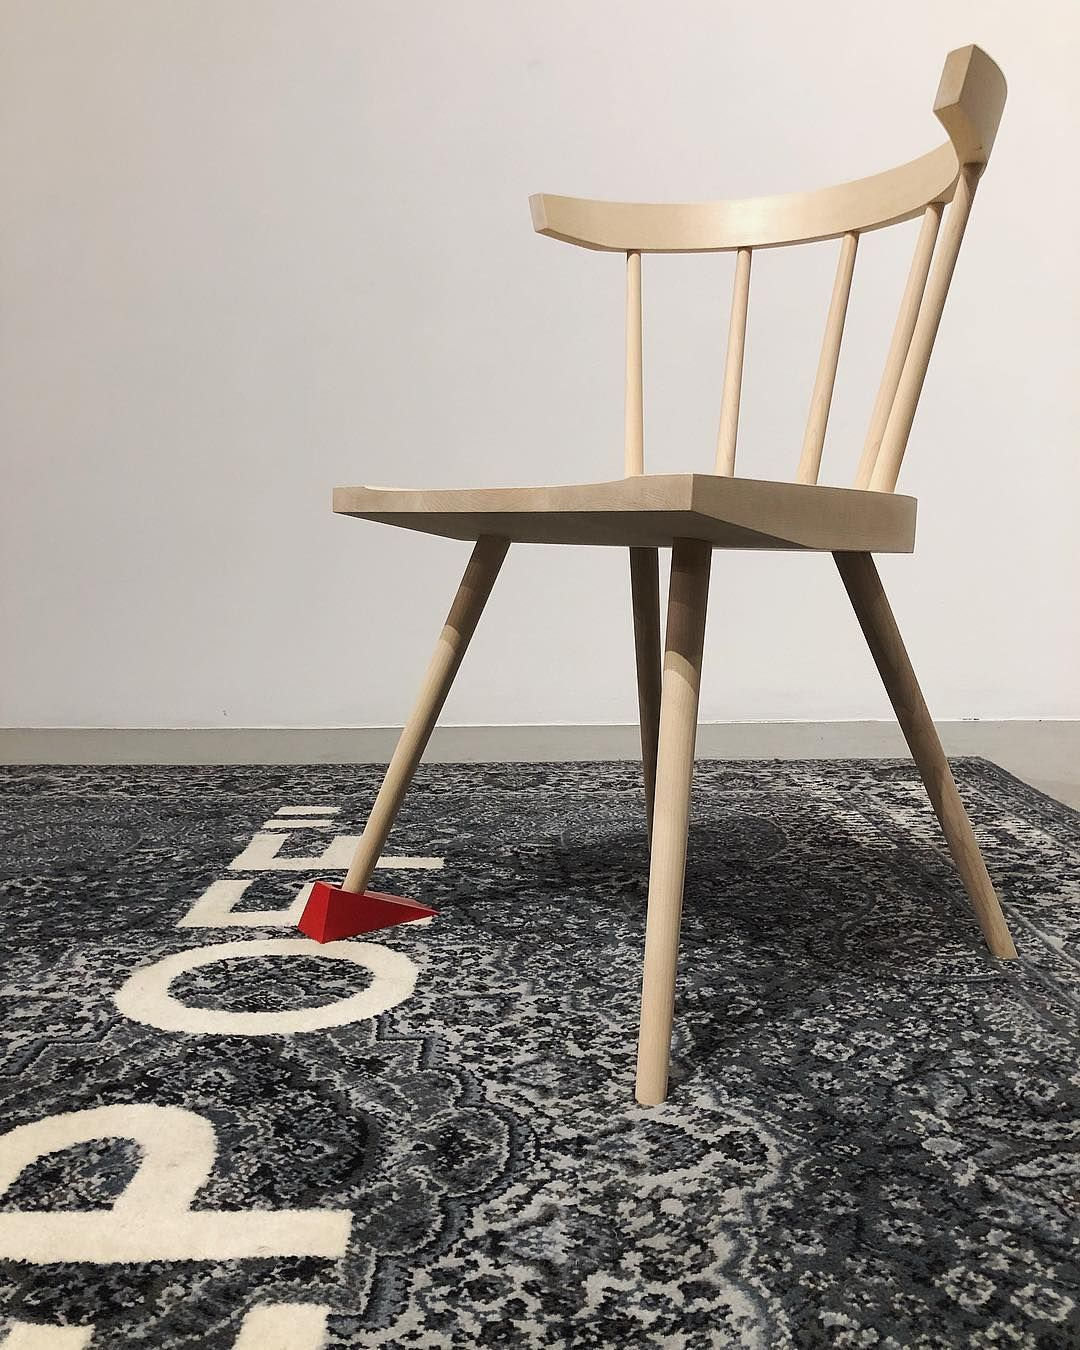 Virgil Abloh S New Furniture Collection With Ikea Is For Millennials Bn Style Chair Ikea Contemporary Furniture